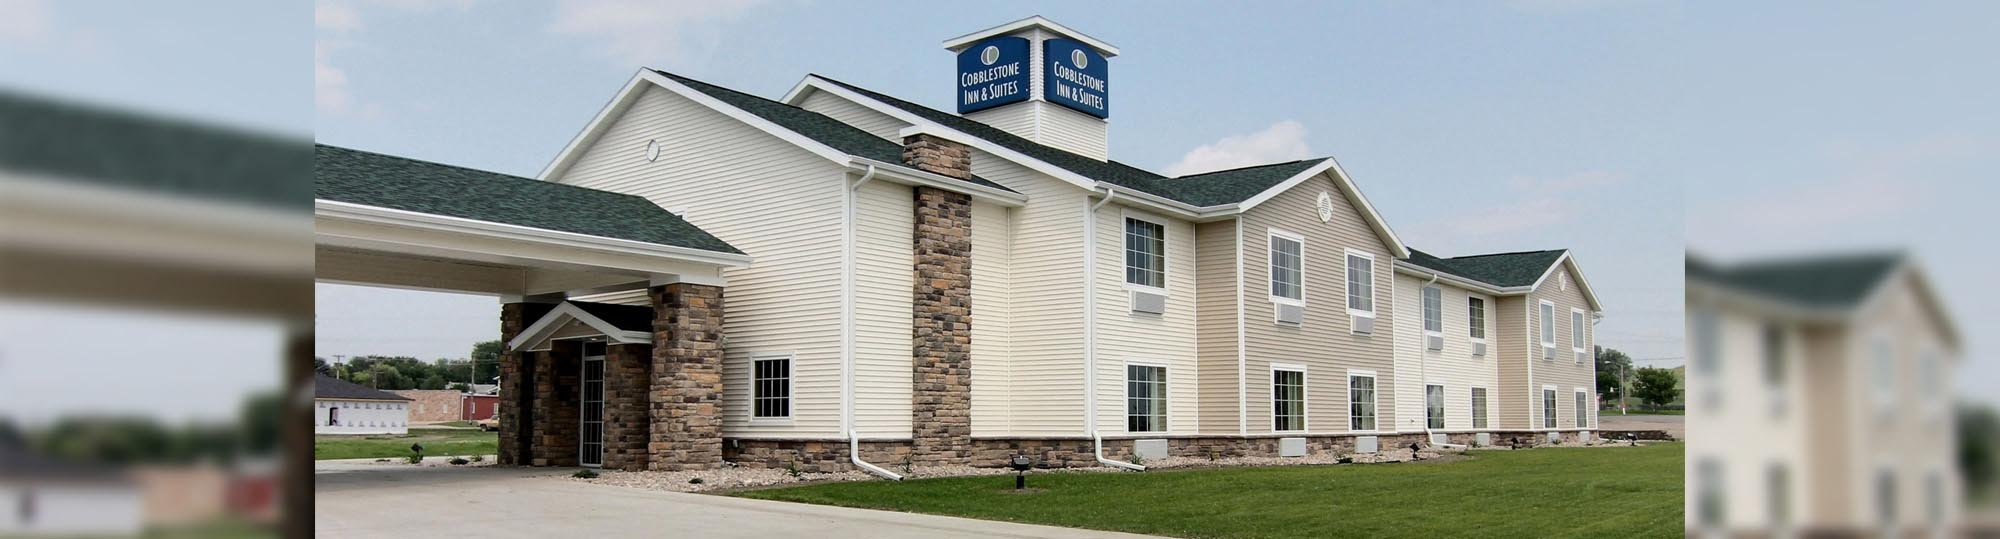 Cobblestone Inn and Suites Linton